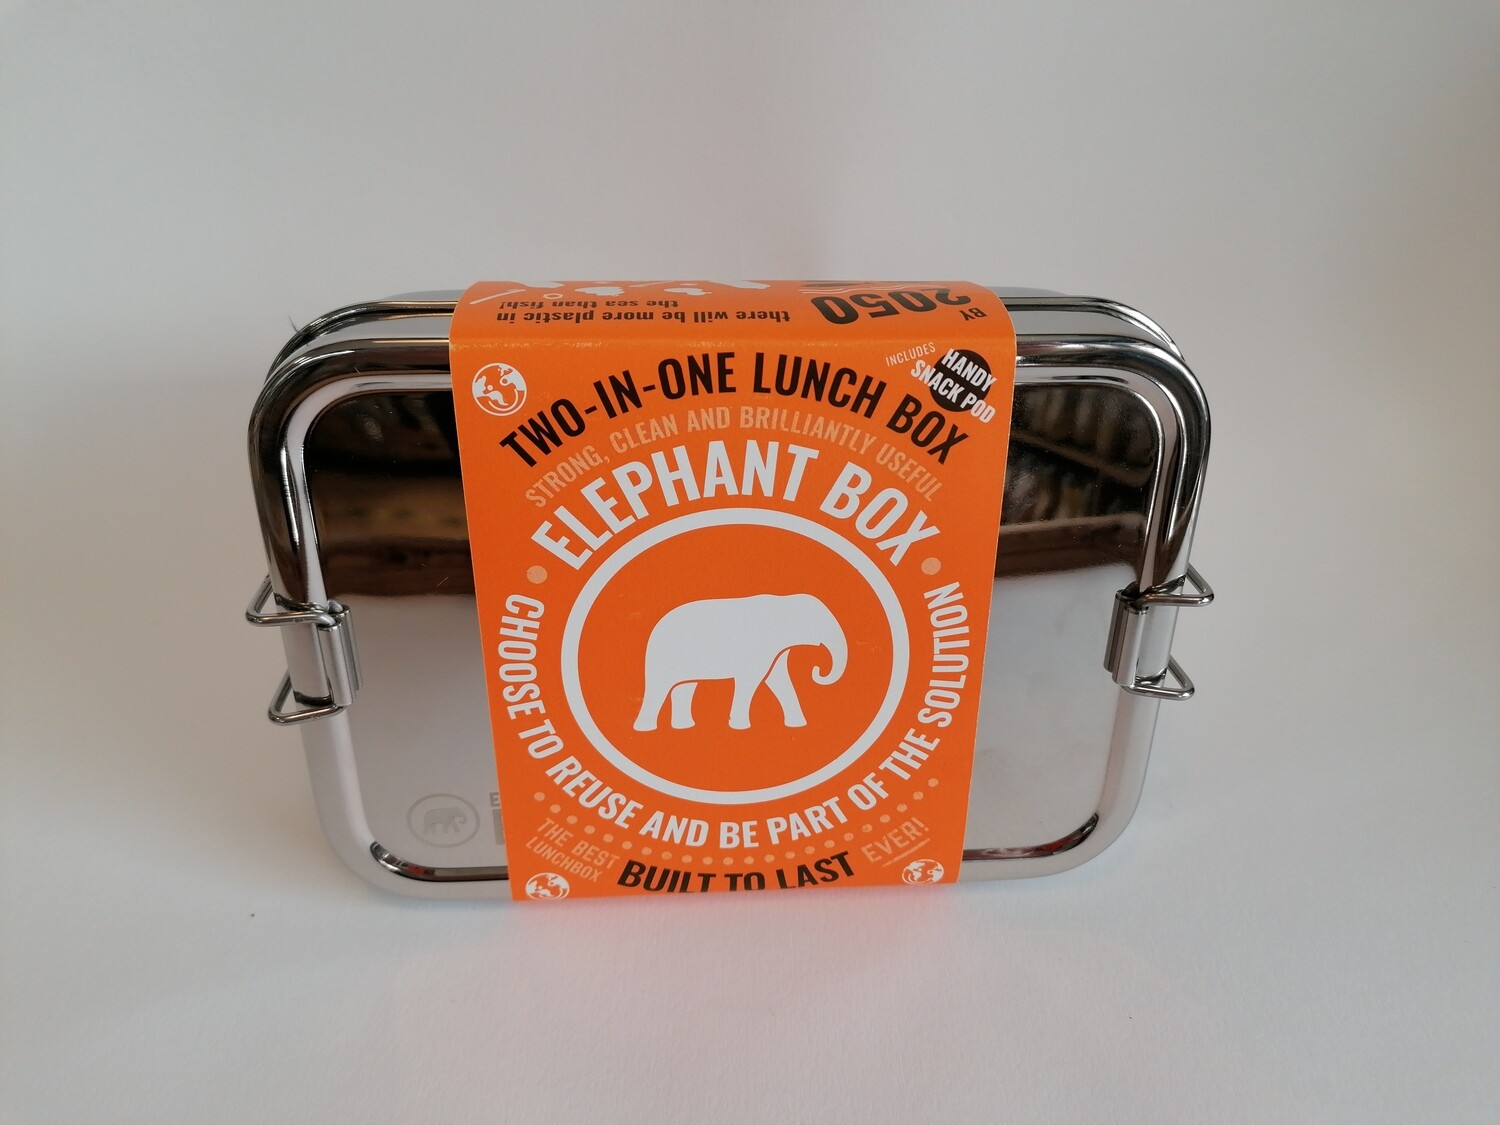 Elephant Box Single Two-in-one